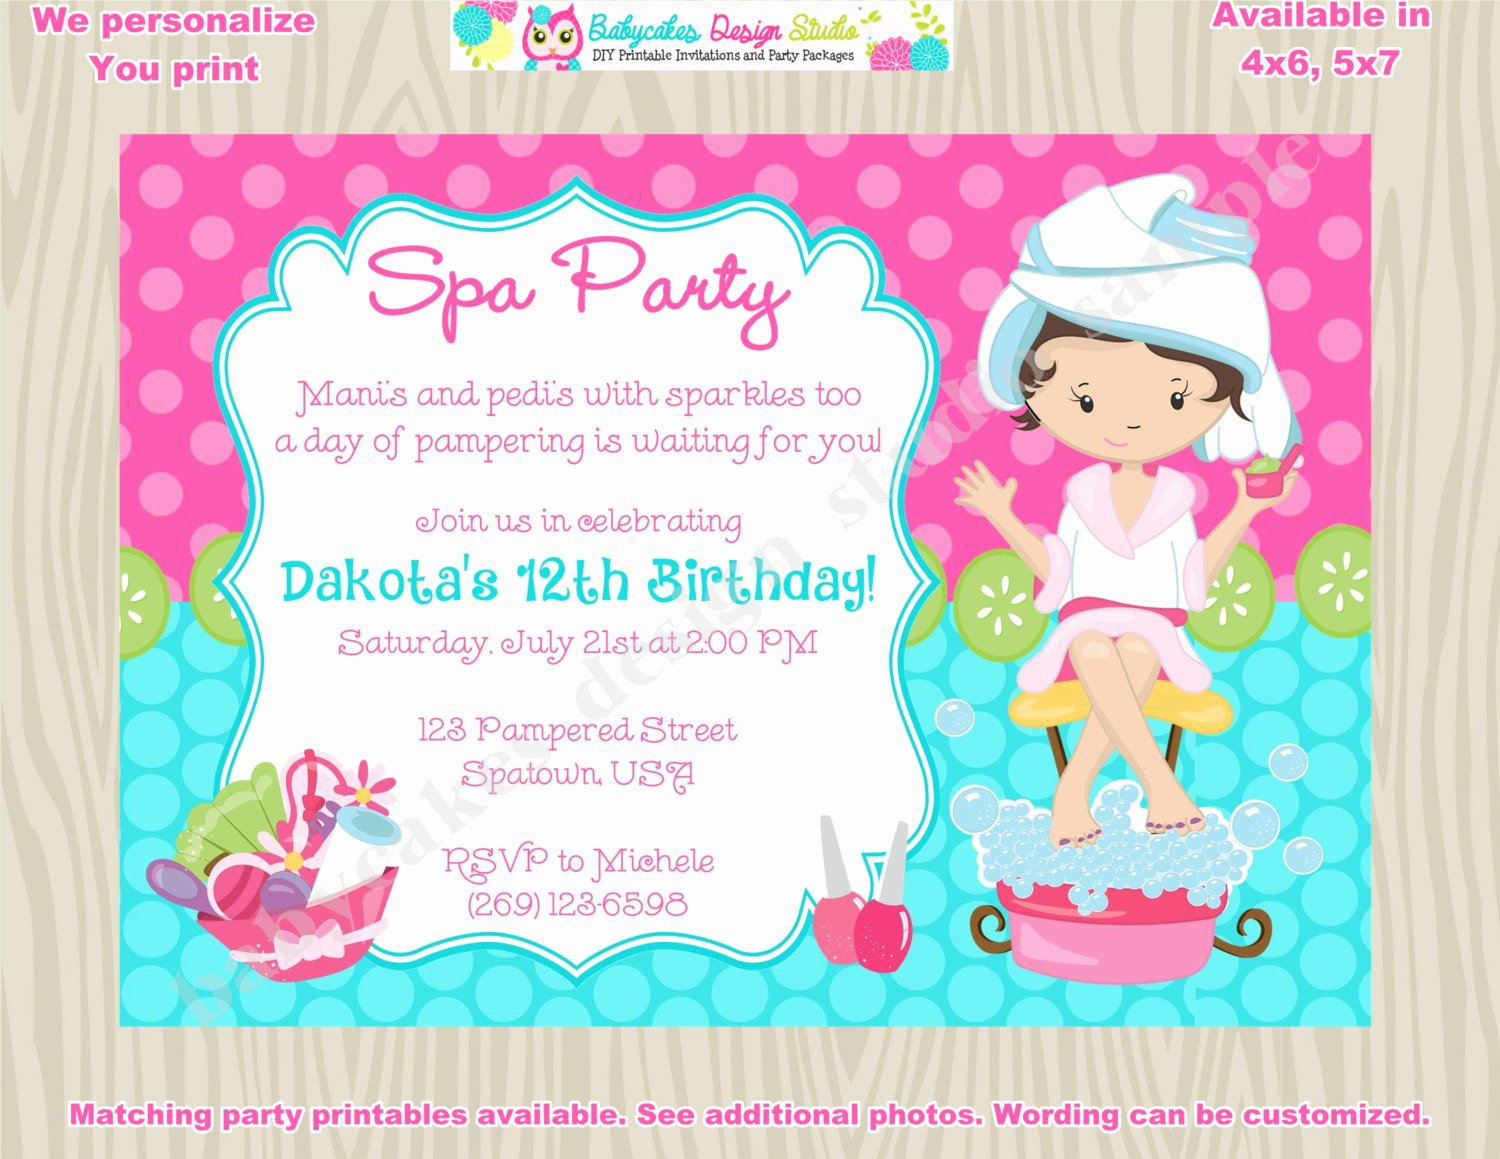 Spa Birthday Party Invitations Elegant Spa Party Invitation Spa Birthday Invitation Invite Spa Day